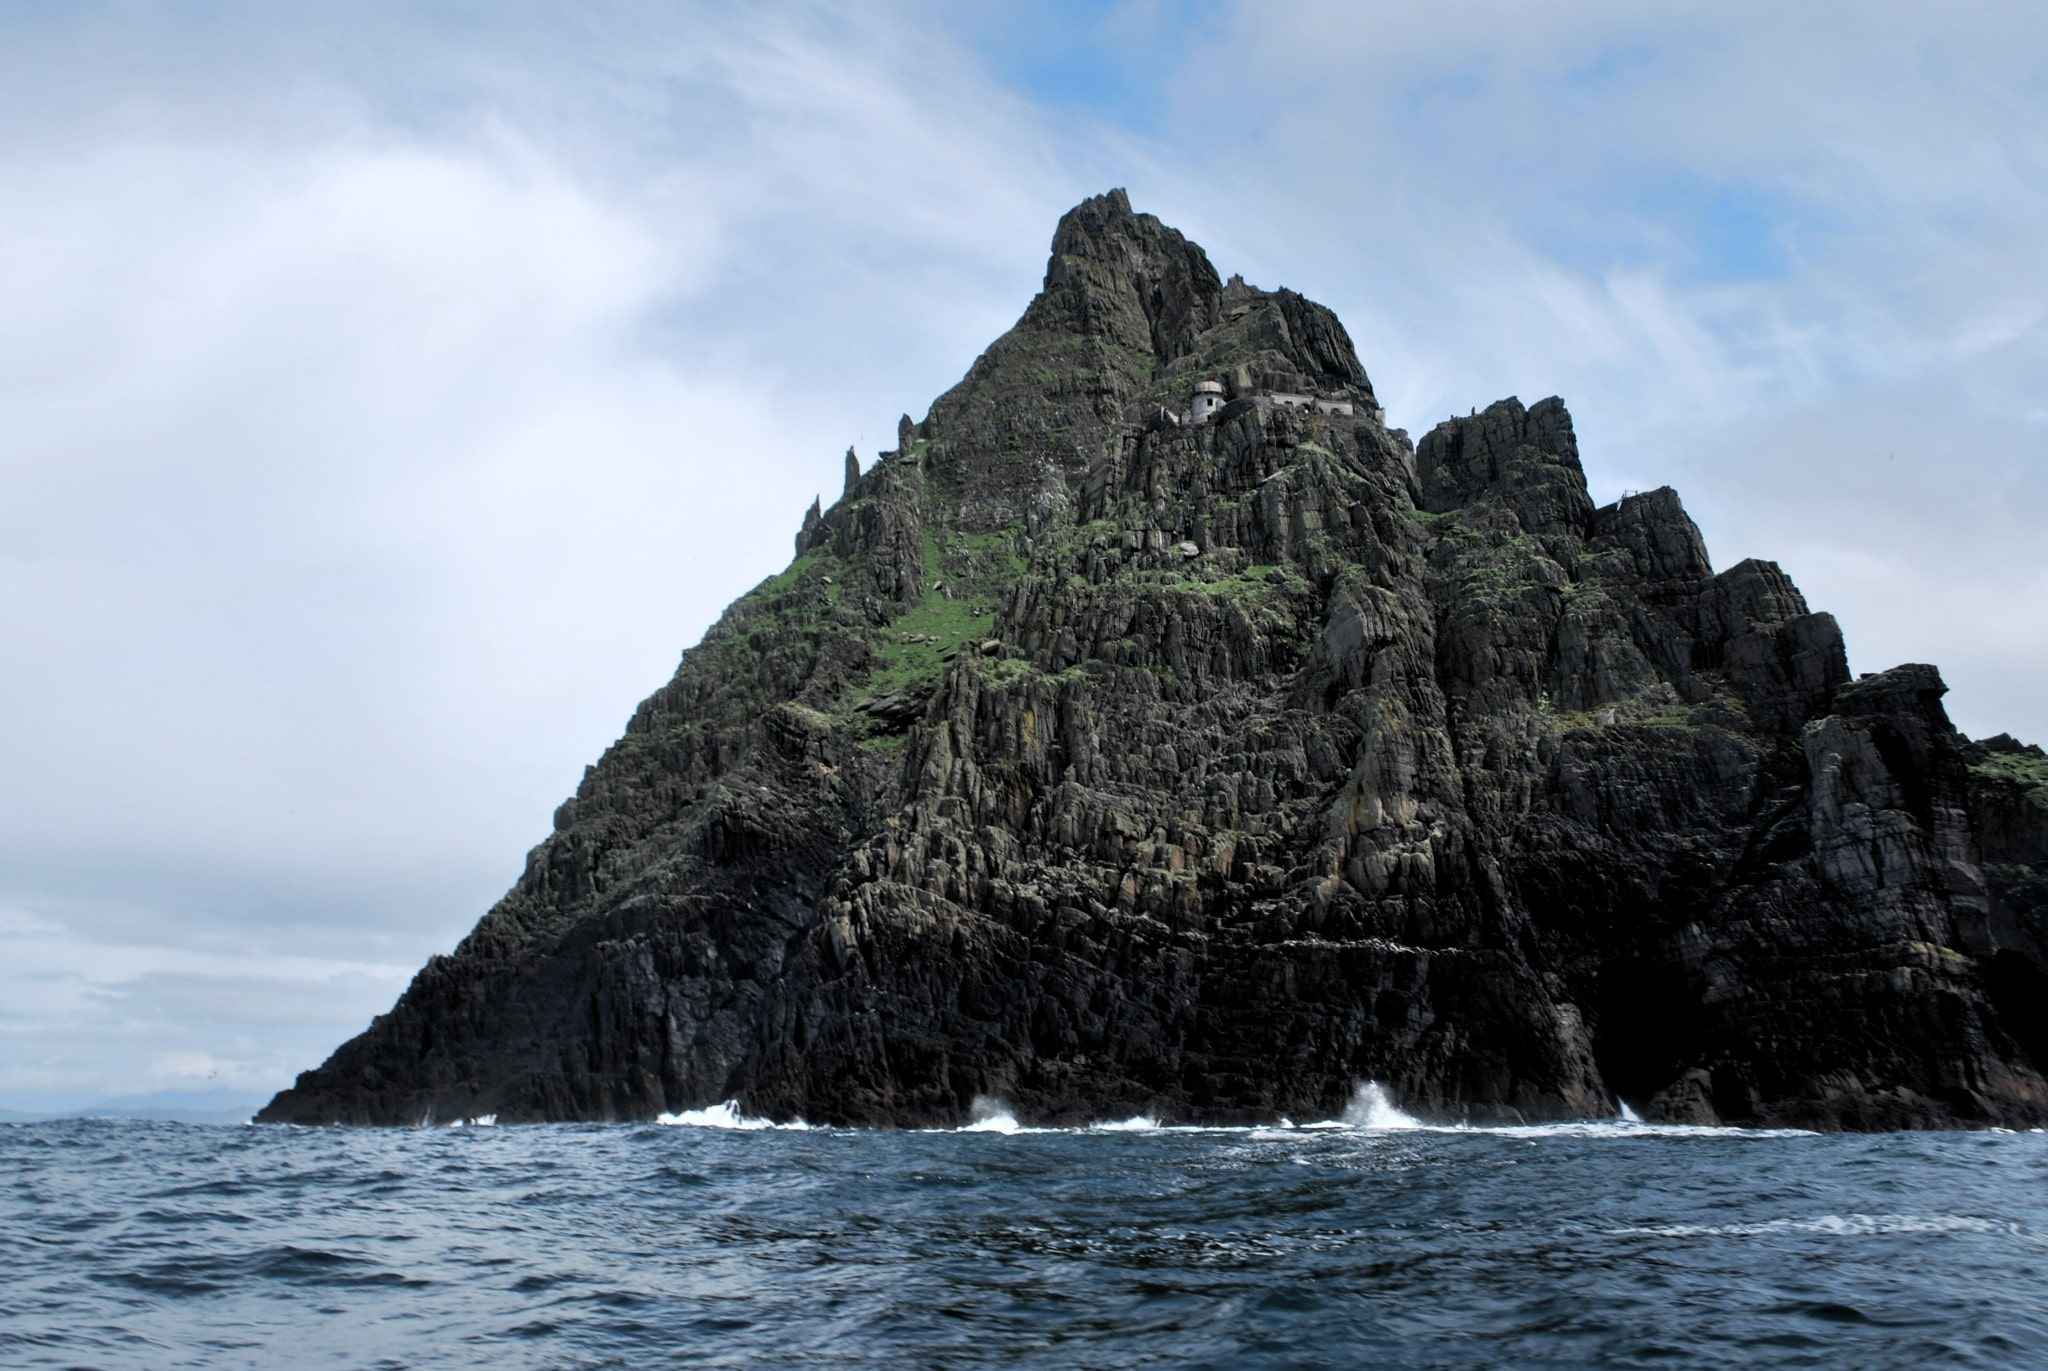 Visiting Skellig Michael Island, from Star Wars, is a cool thing to do in Ireland